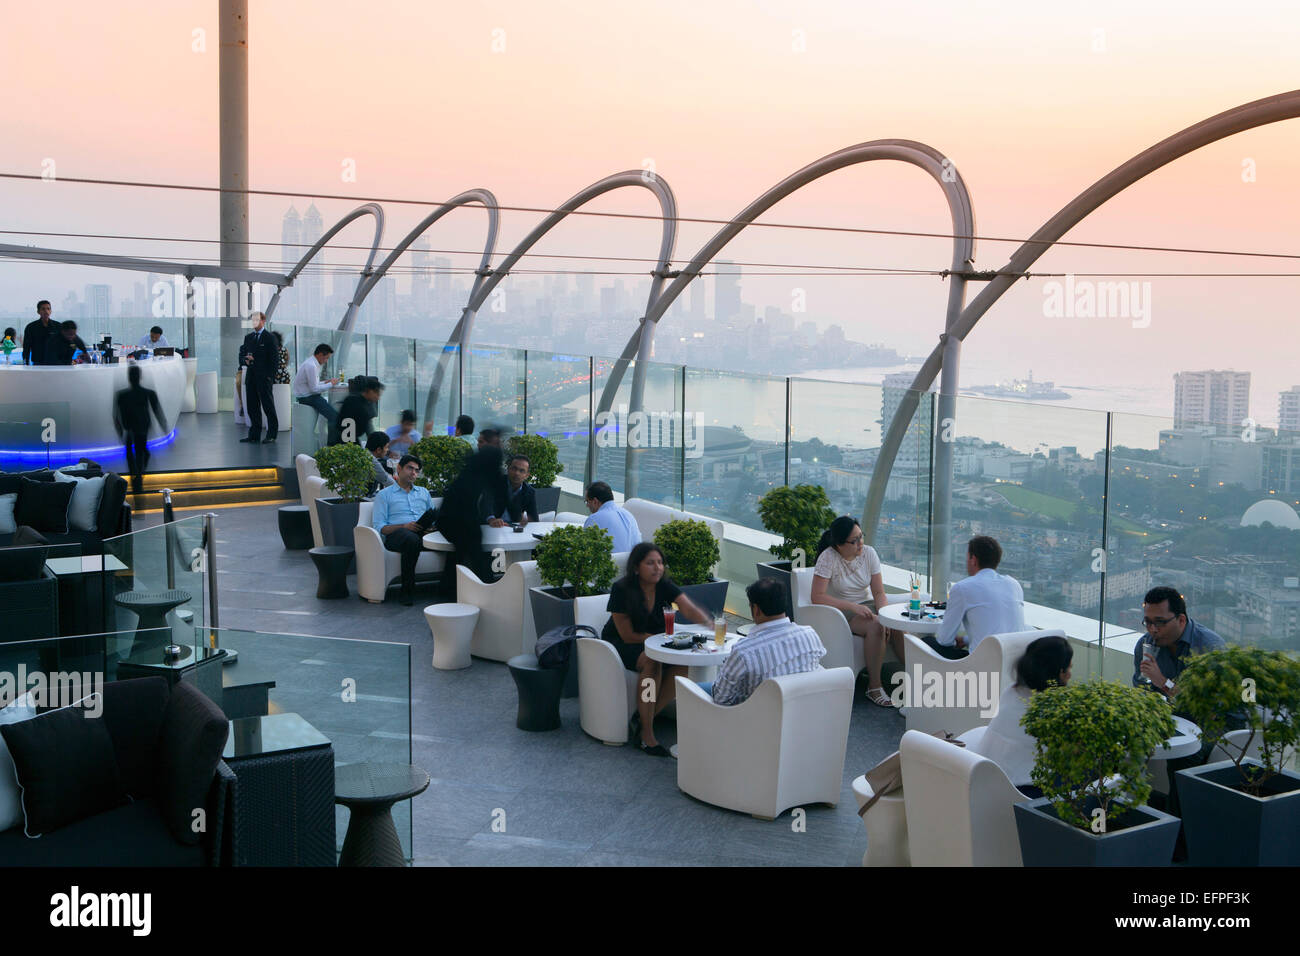 Aer, the rooftop restaurant and bar at the Four Seasons Hotel, Mumbai, Maharashtra, India, Asia - Stock Image